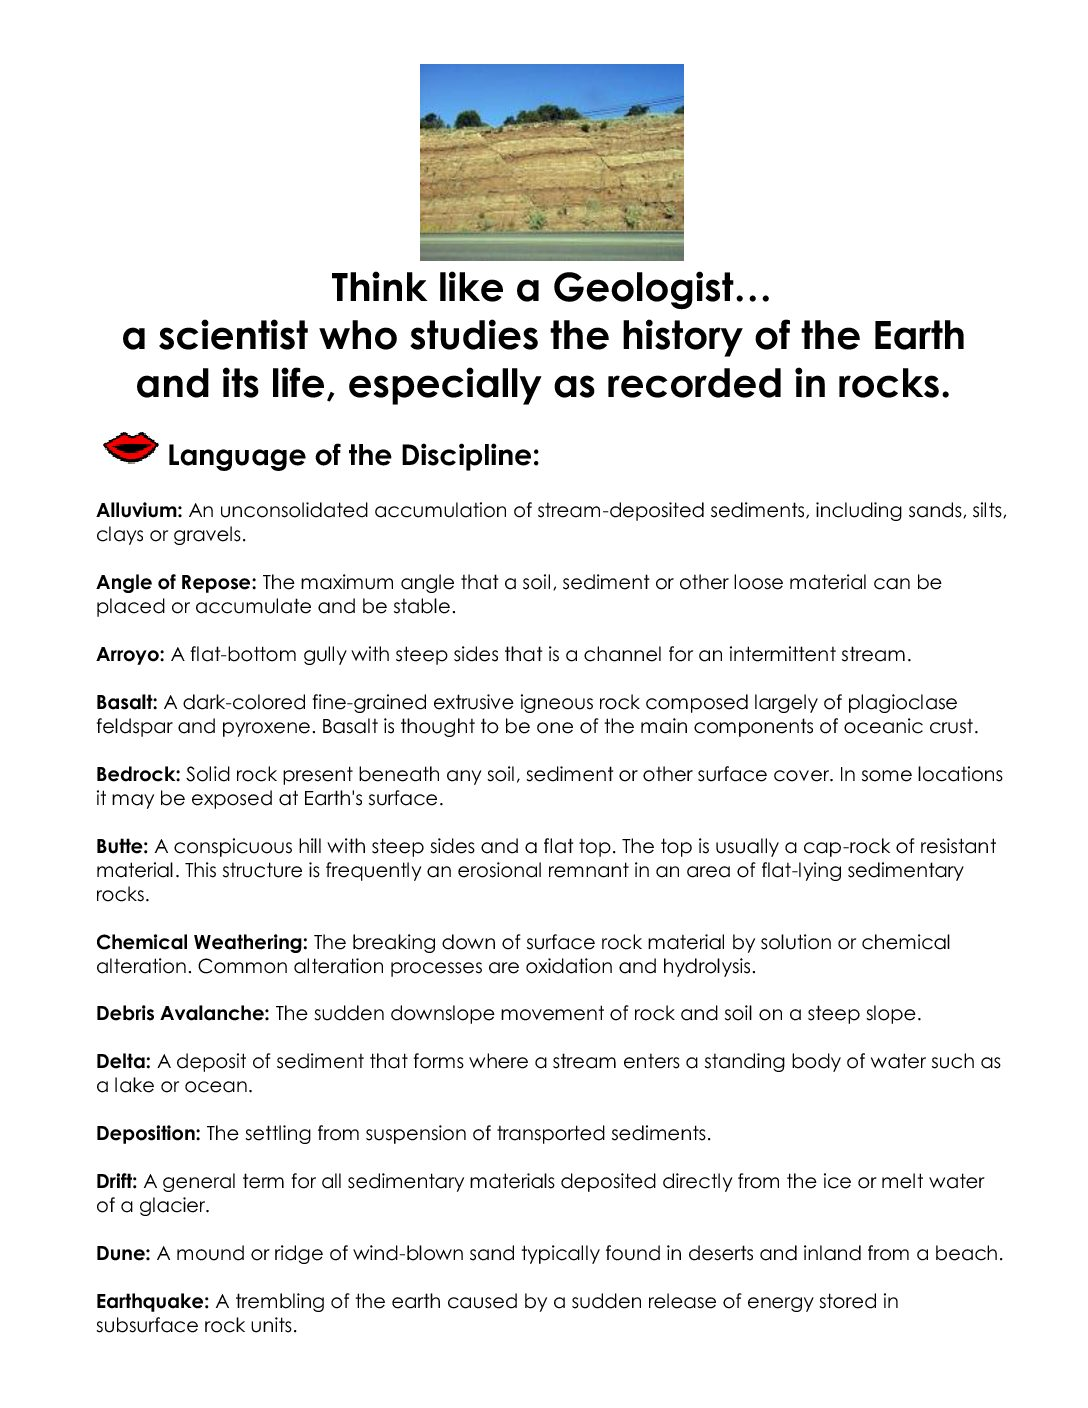 Think like a geologist sheet